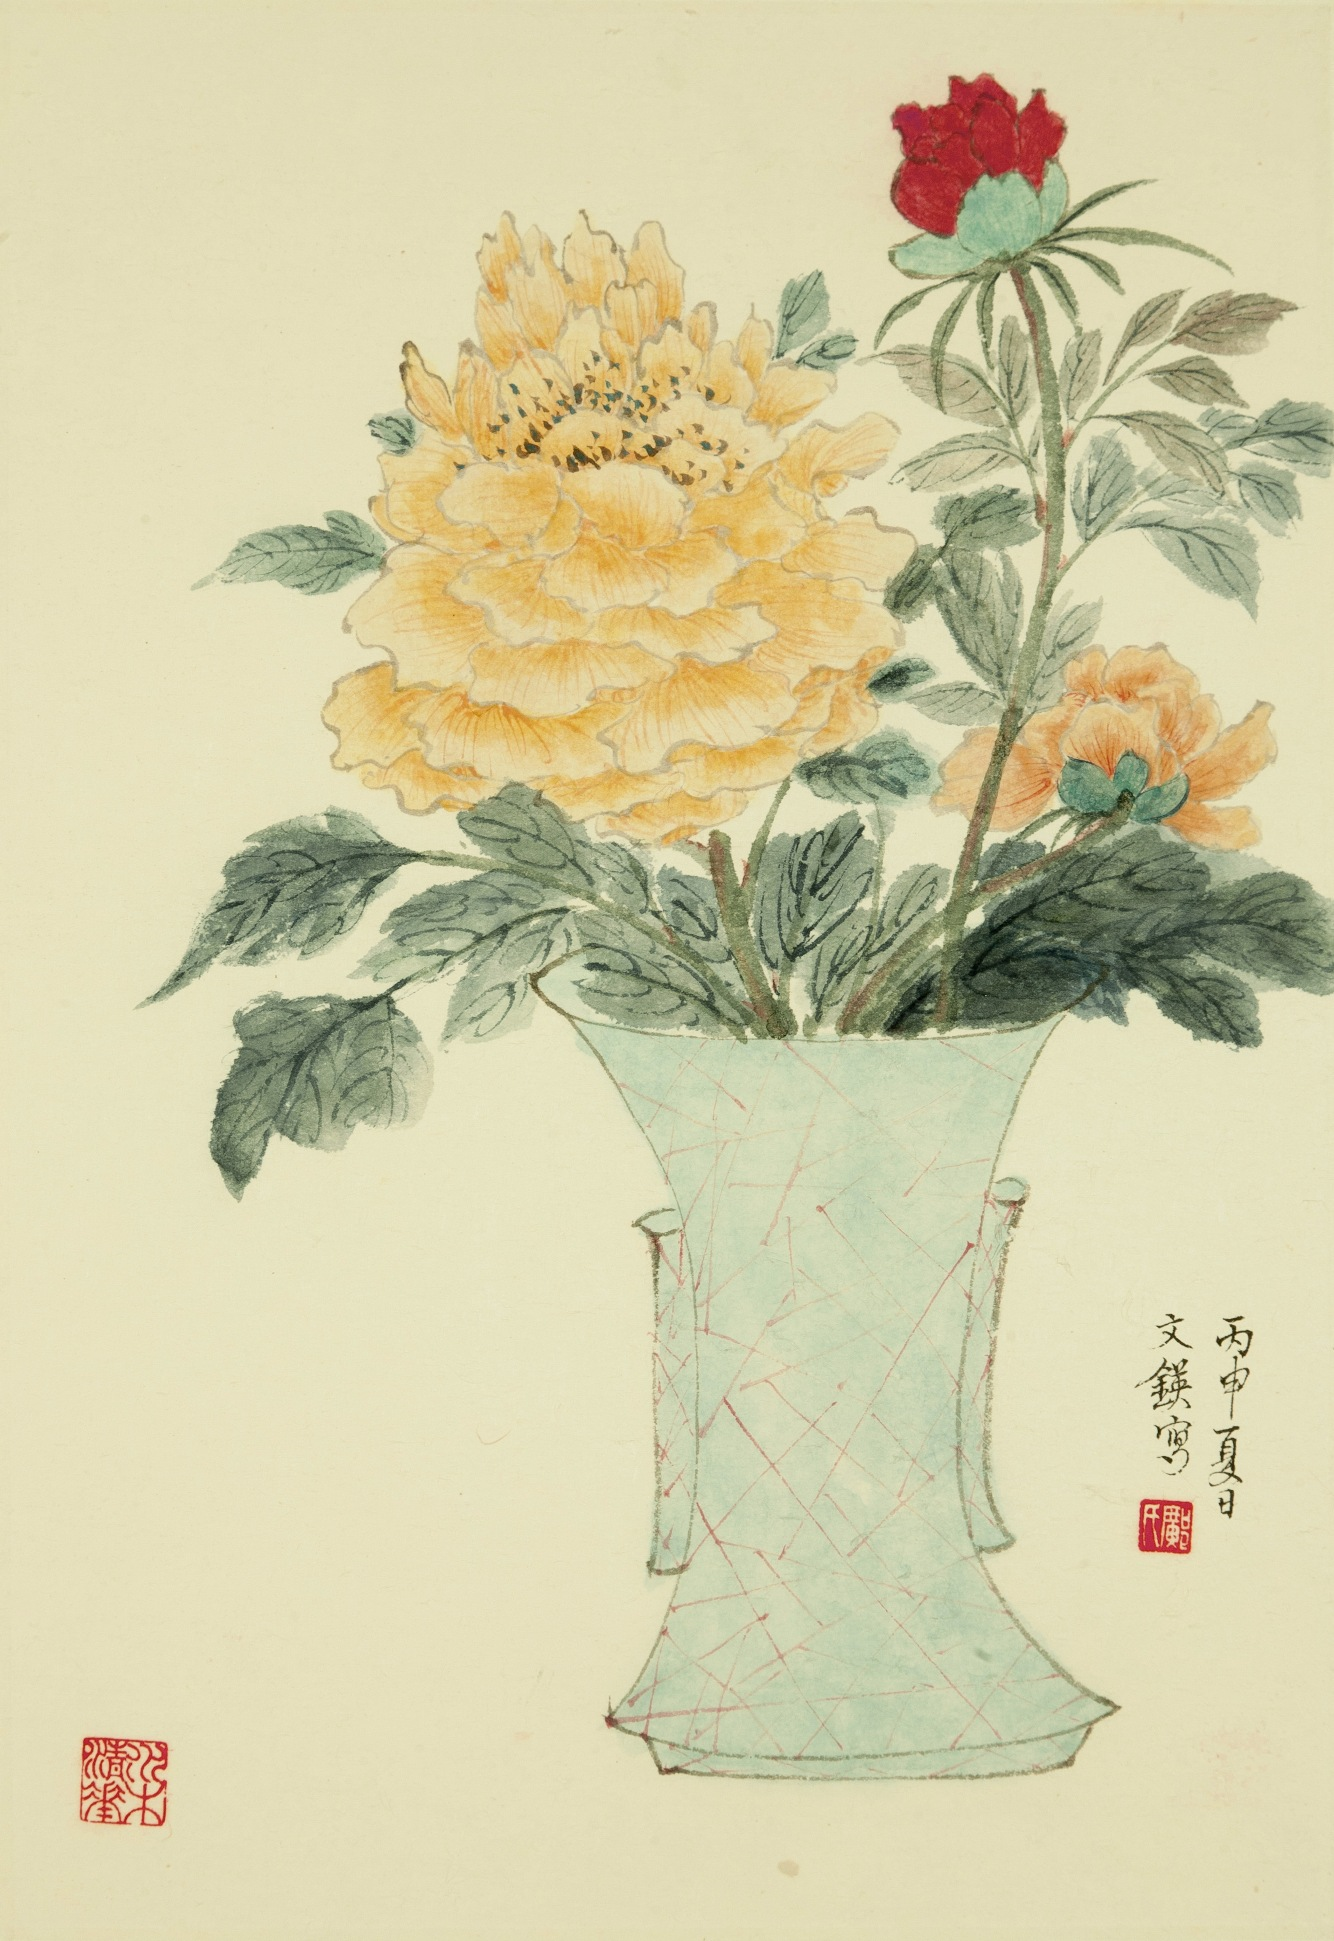 古瓶花卉 -- 牡丹 (2) Peony in Antique Vase (2)